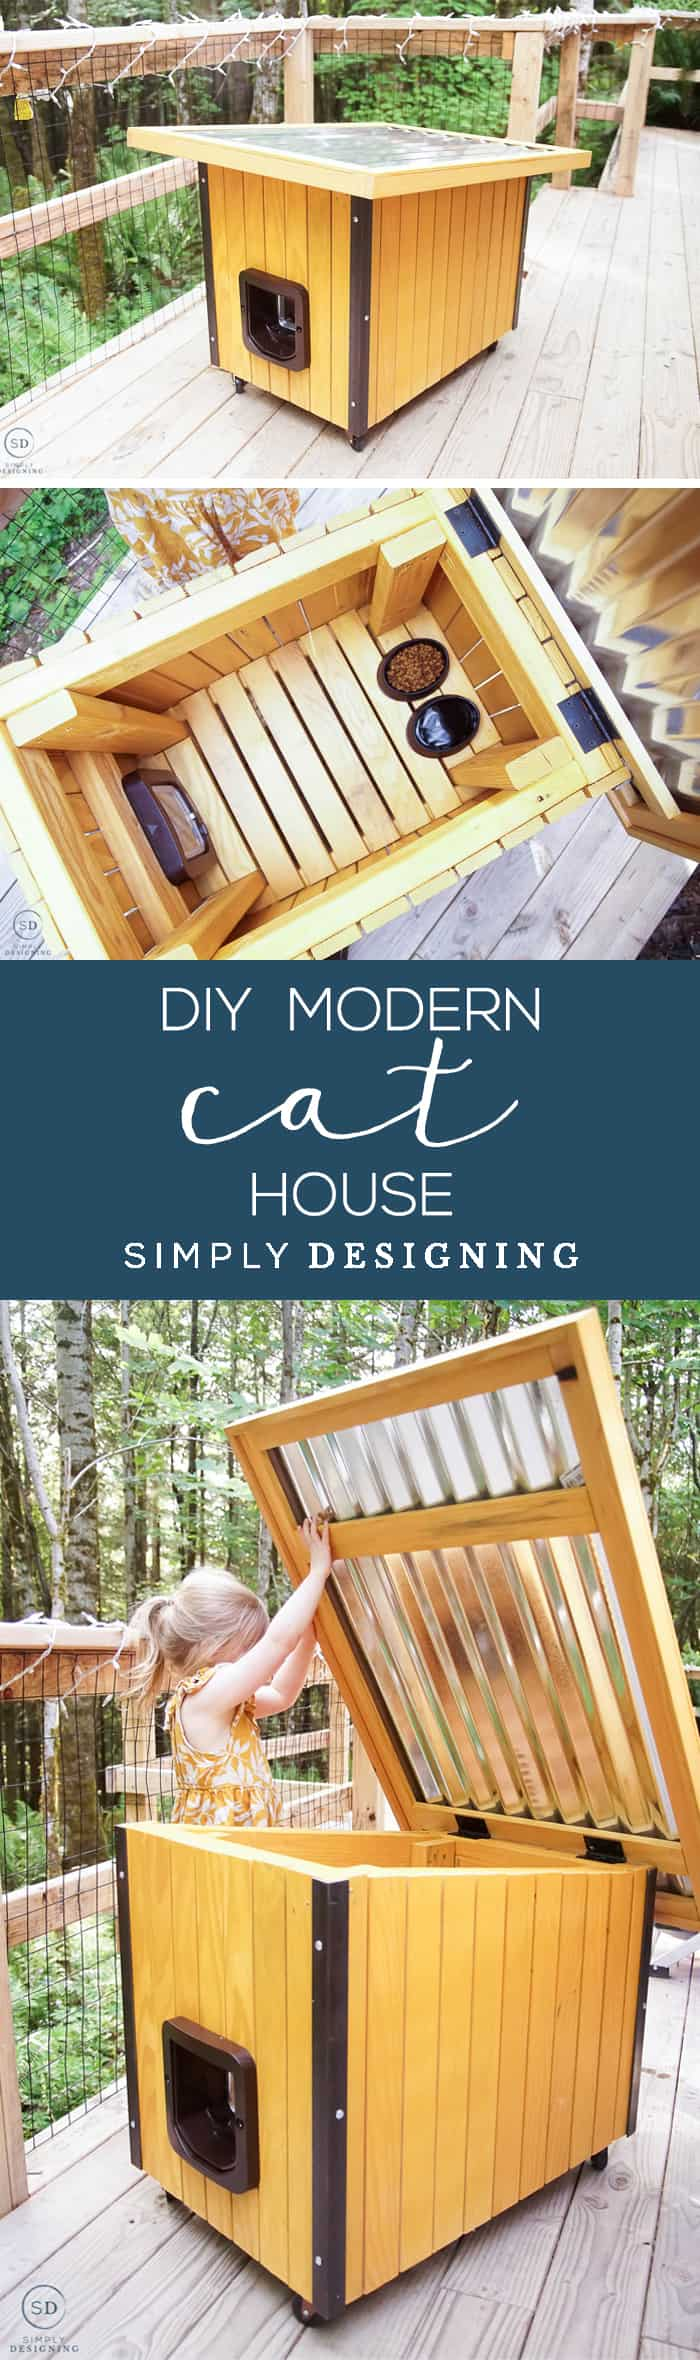 If you have a cat or a small dog and like modern styles you will love this minimalistic and modern DIY Cat House that you can easily make yourself